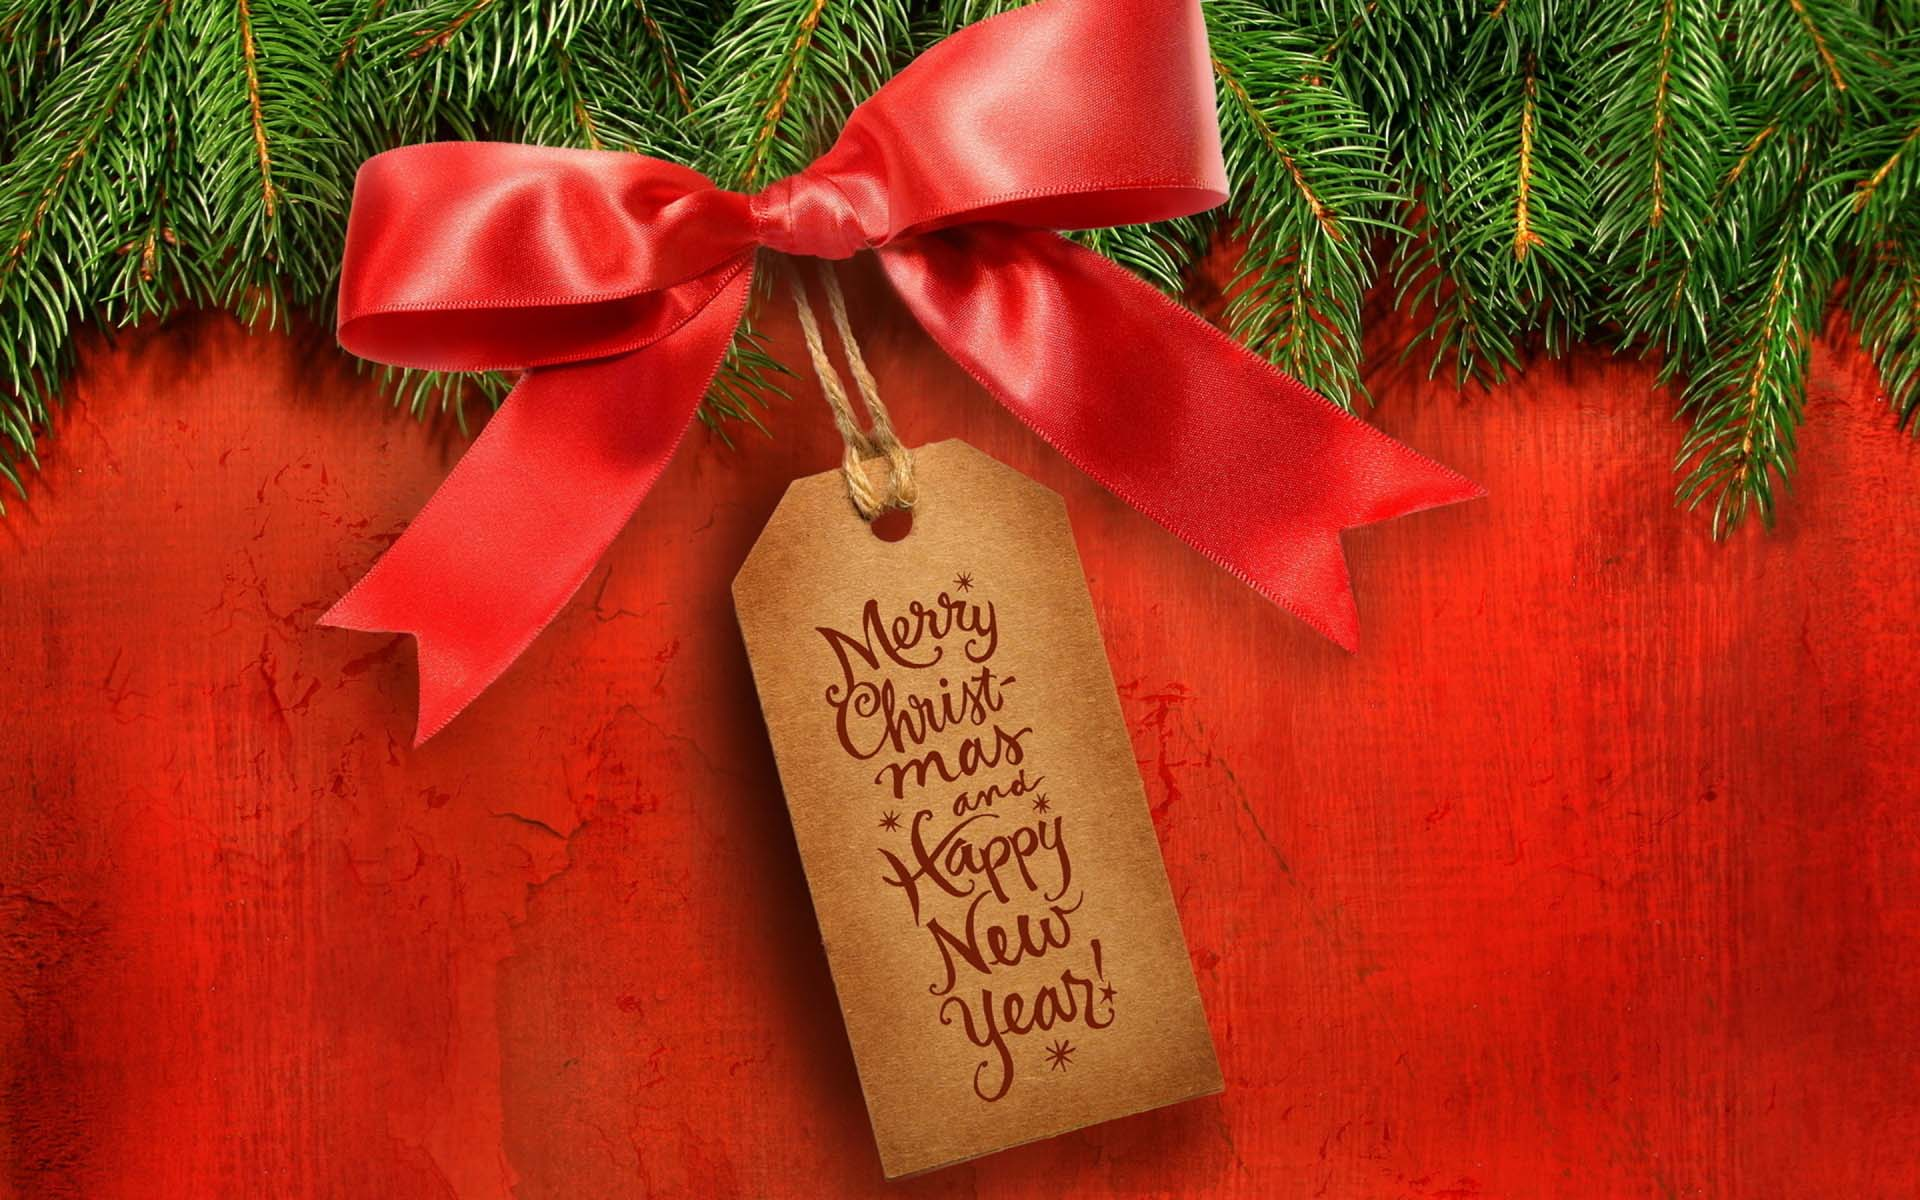 Marry Christmas and Happy New Year HD Wallpaper